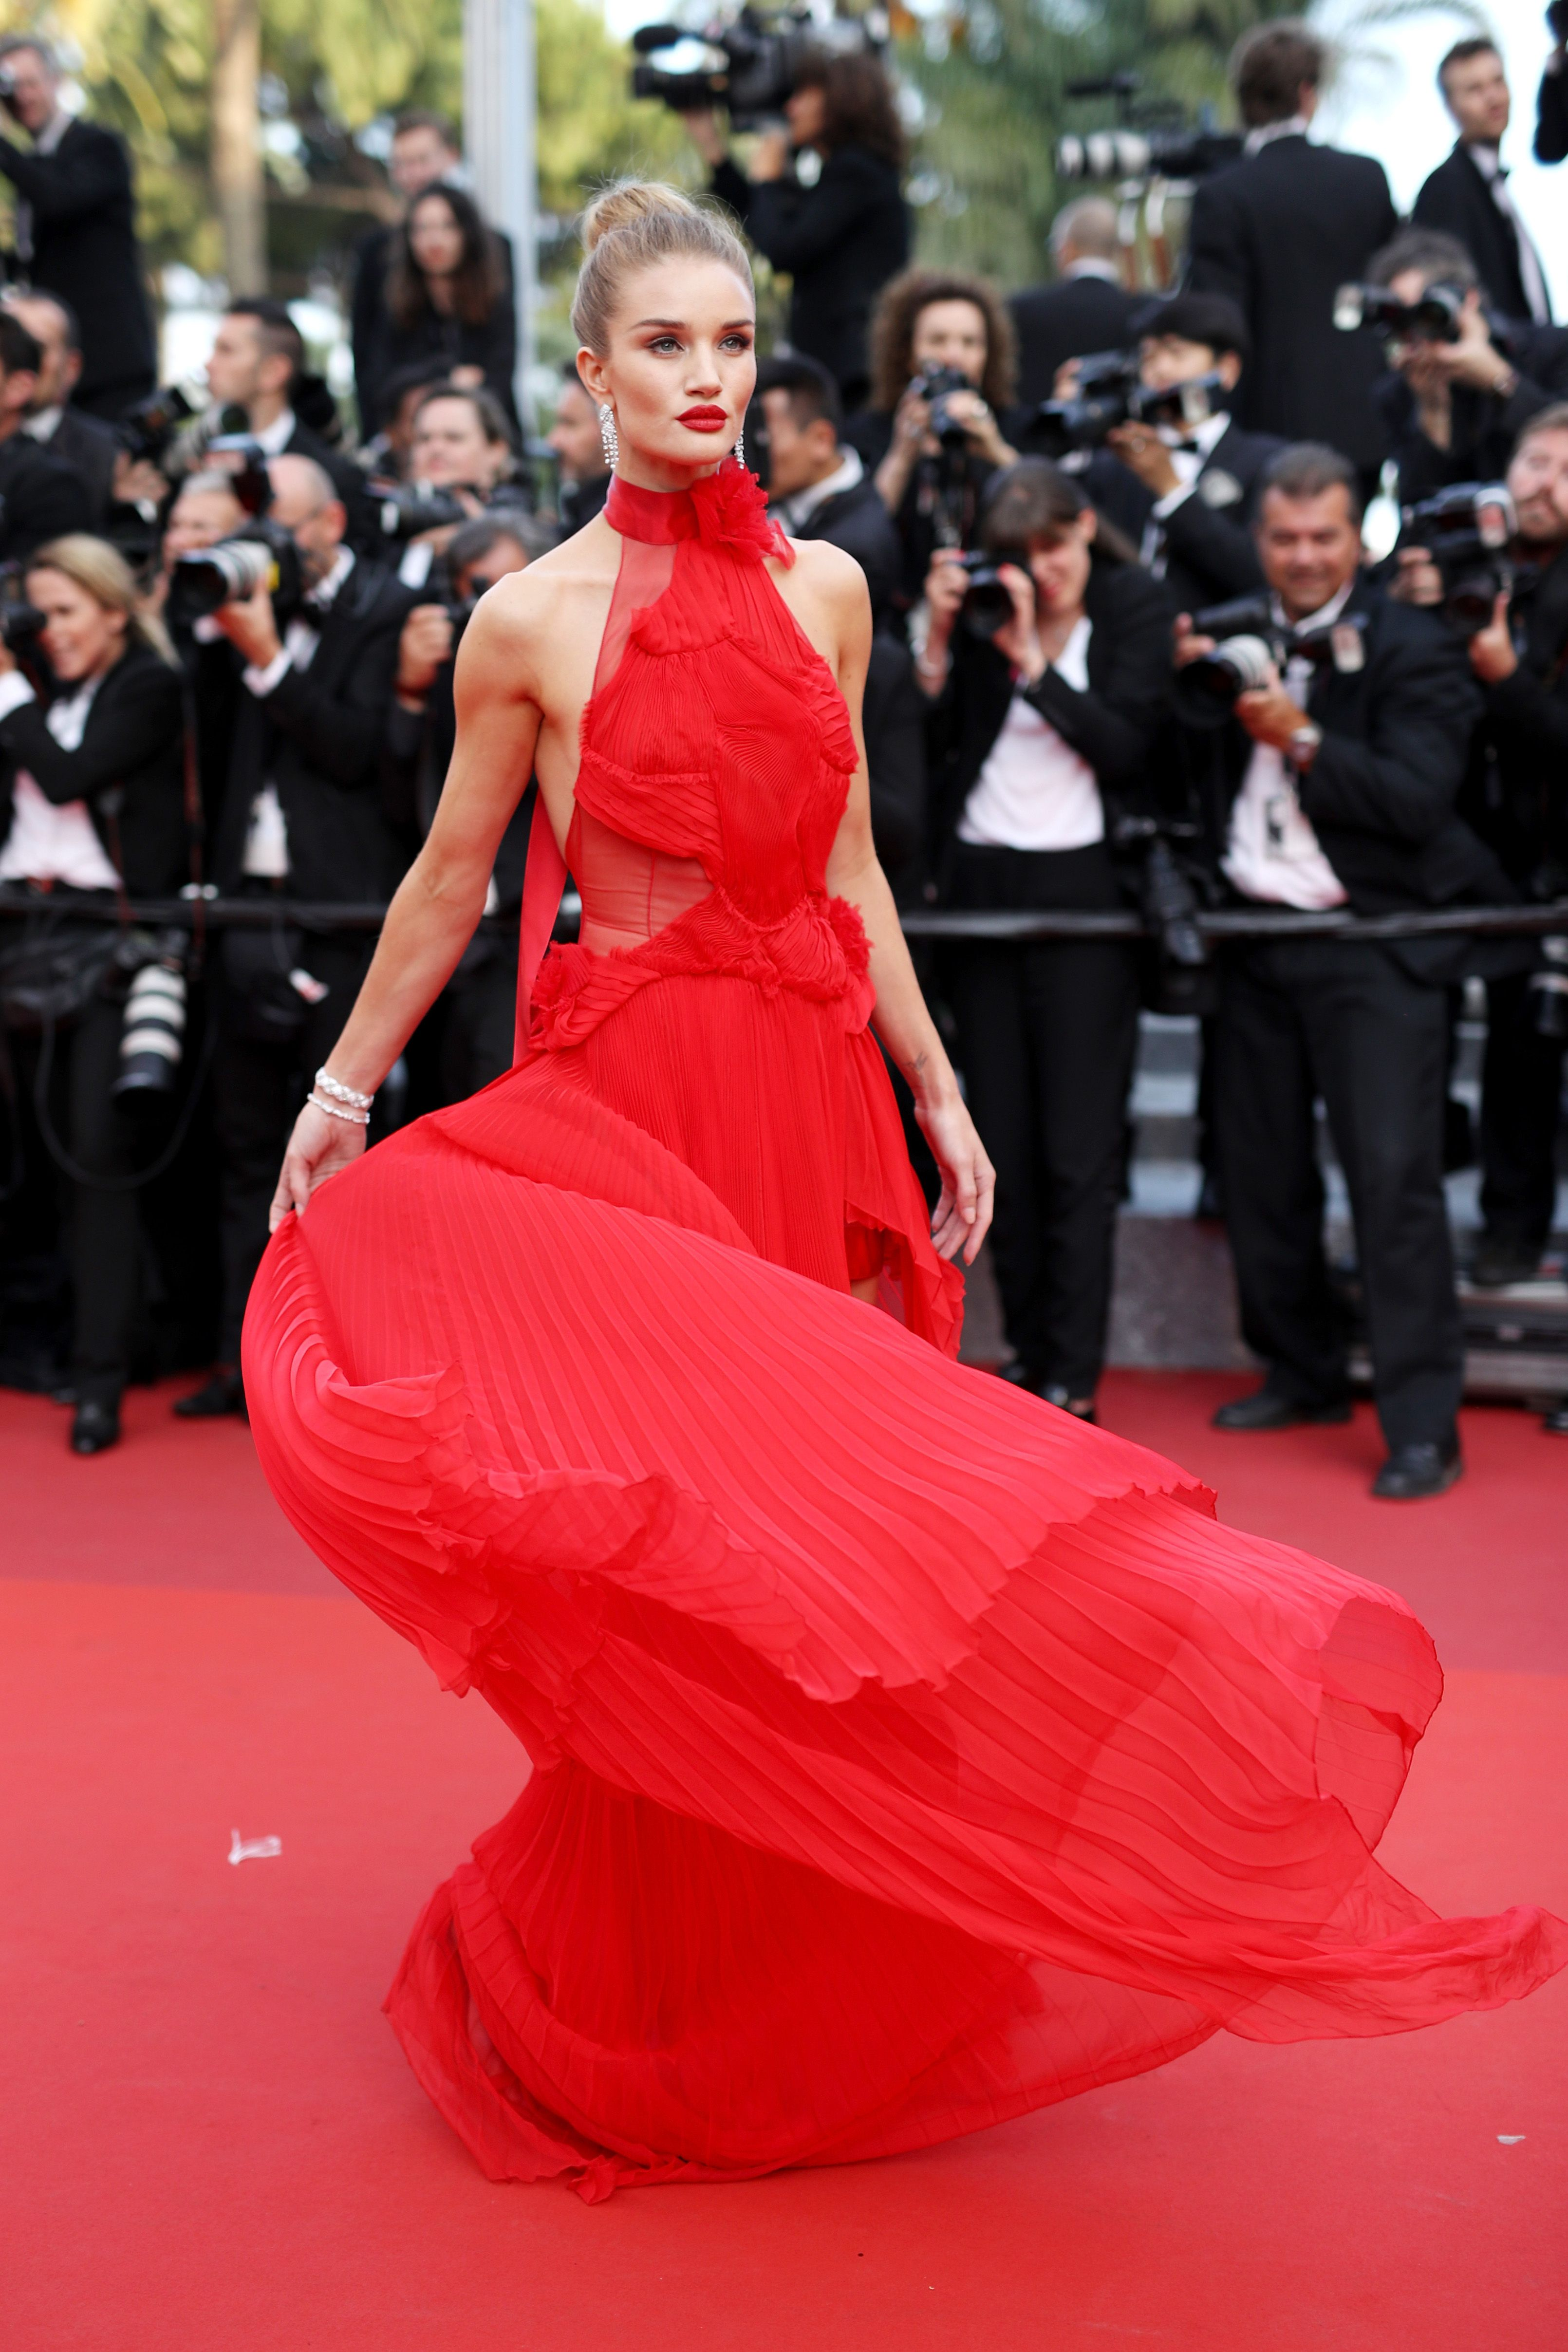 ... gown on The Unknown Girl s red carpet. Rosie Huntington-Whitley in  Alexandre Vauthier  8908ed3c6c09